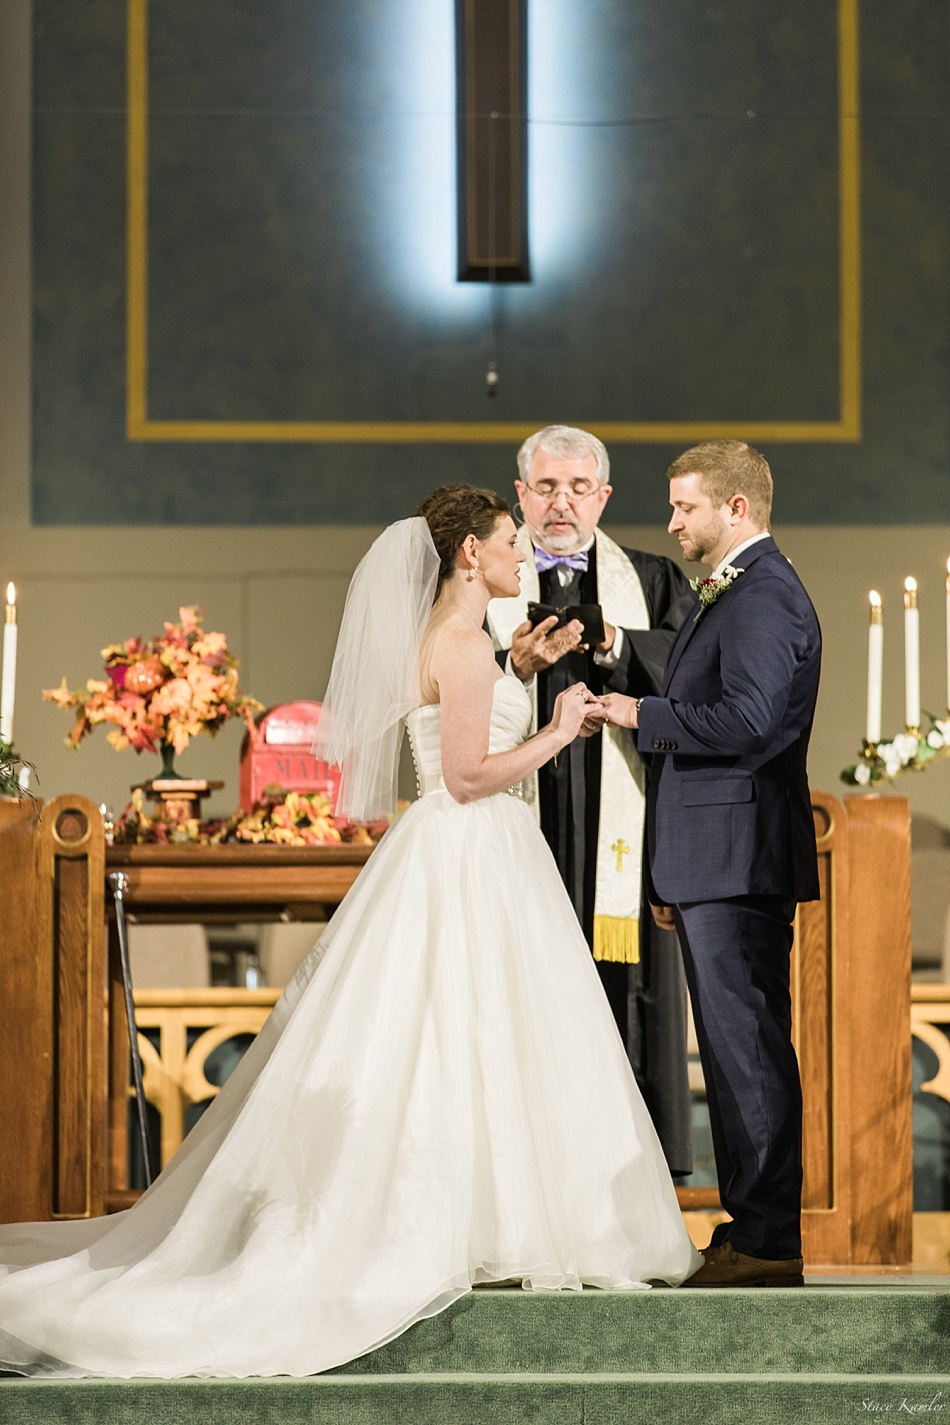 Exchanging rings during ceremony